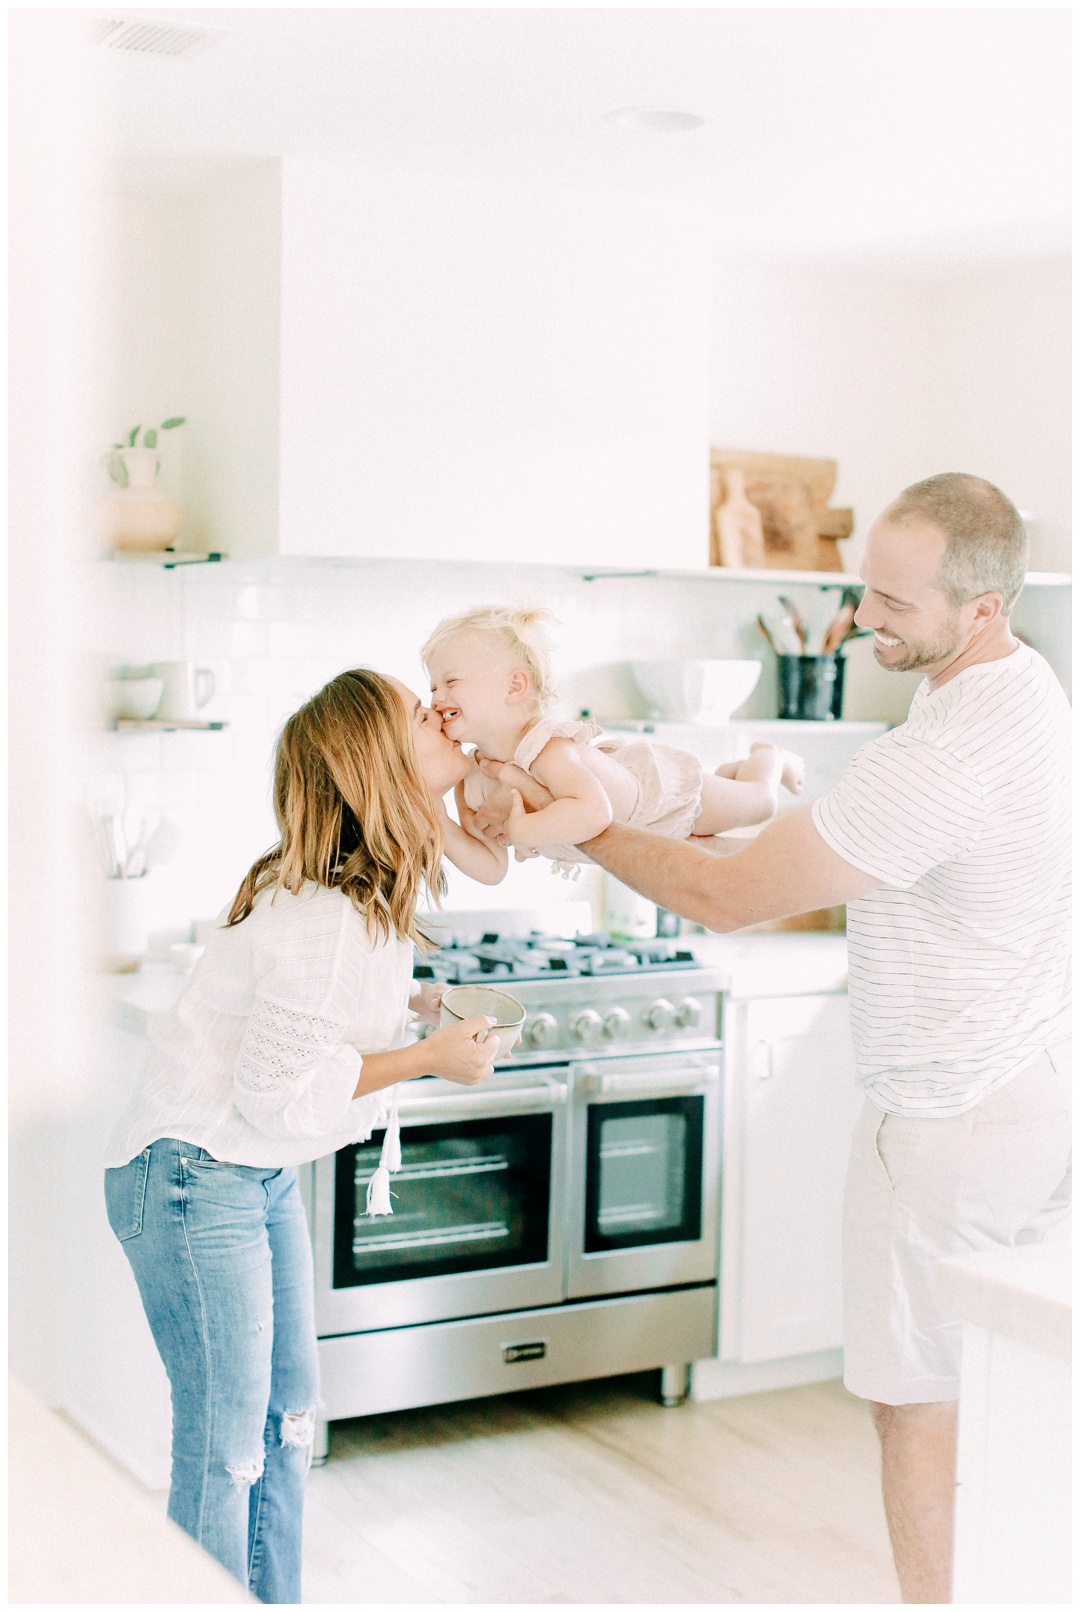 Newport_Beach_Lifestyle_in-Home_Photographer_Newport_Beach_In-Home_Photography_Orange_County_Photographer_Cori_Kleckner_Photography_Orange_County_in-home_Photography_Kristin_Dinsmore_Family_session_1915.jpg